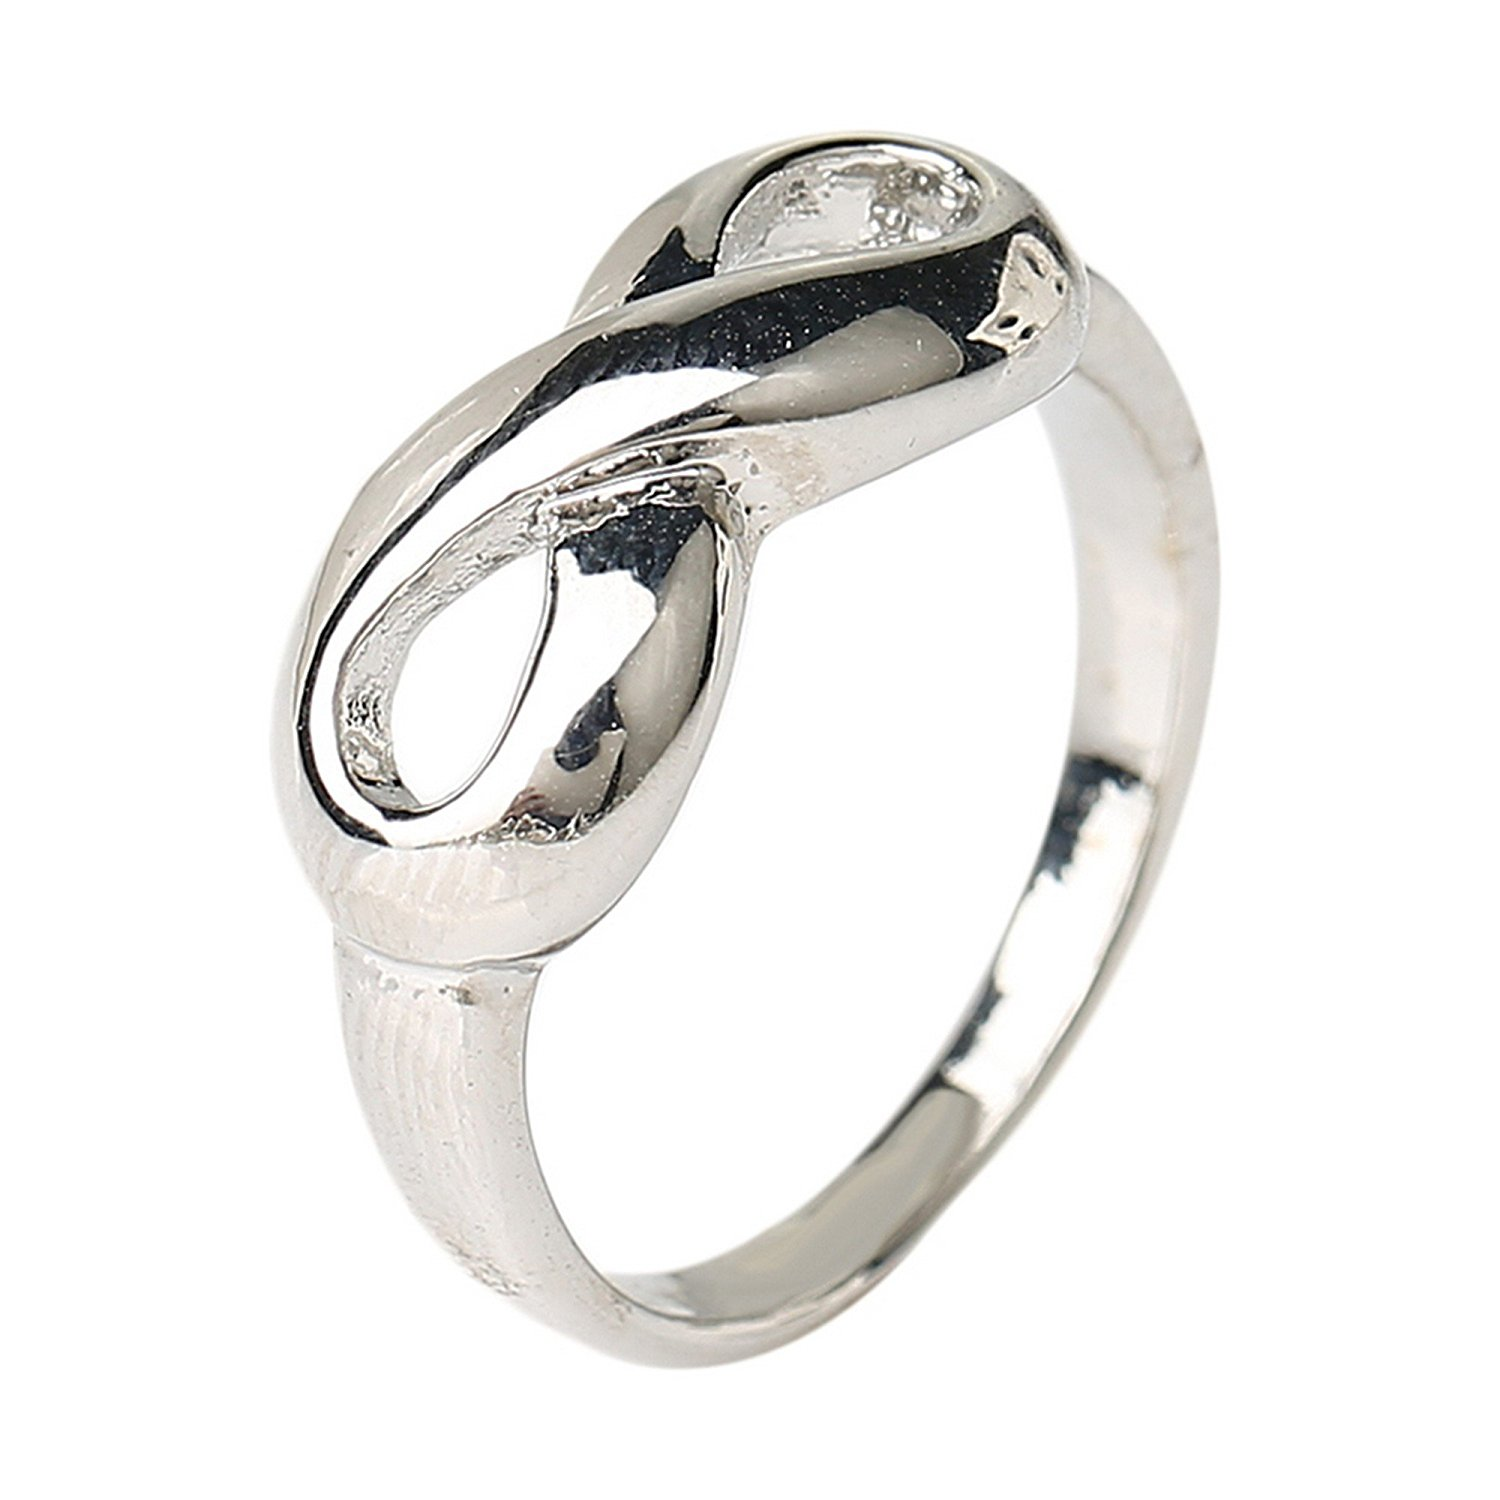 90178ab5bf Get Quotations · GDSTAR Jewelry Plating Silver Ring His and Hers Promise  Ring Sets Engage